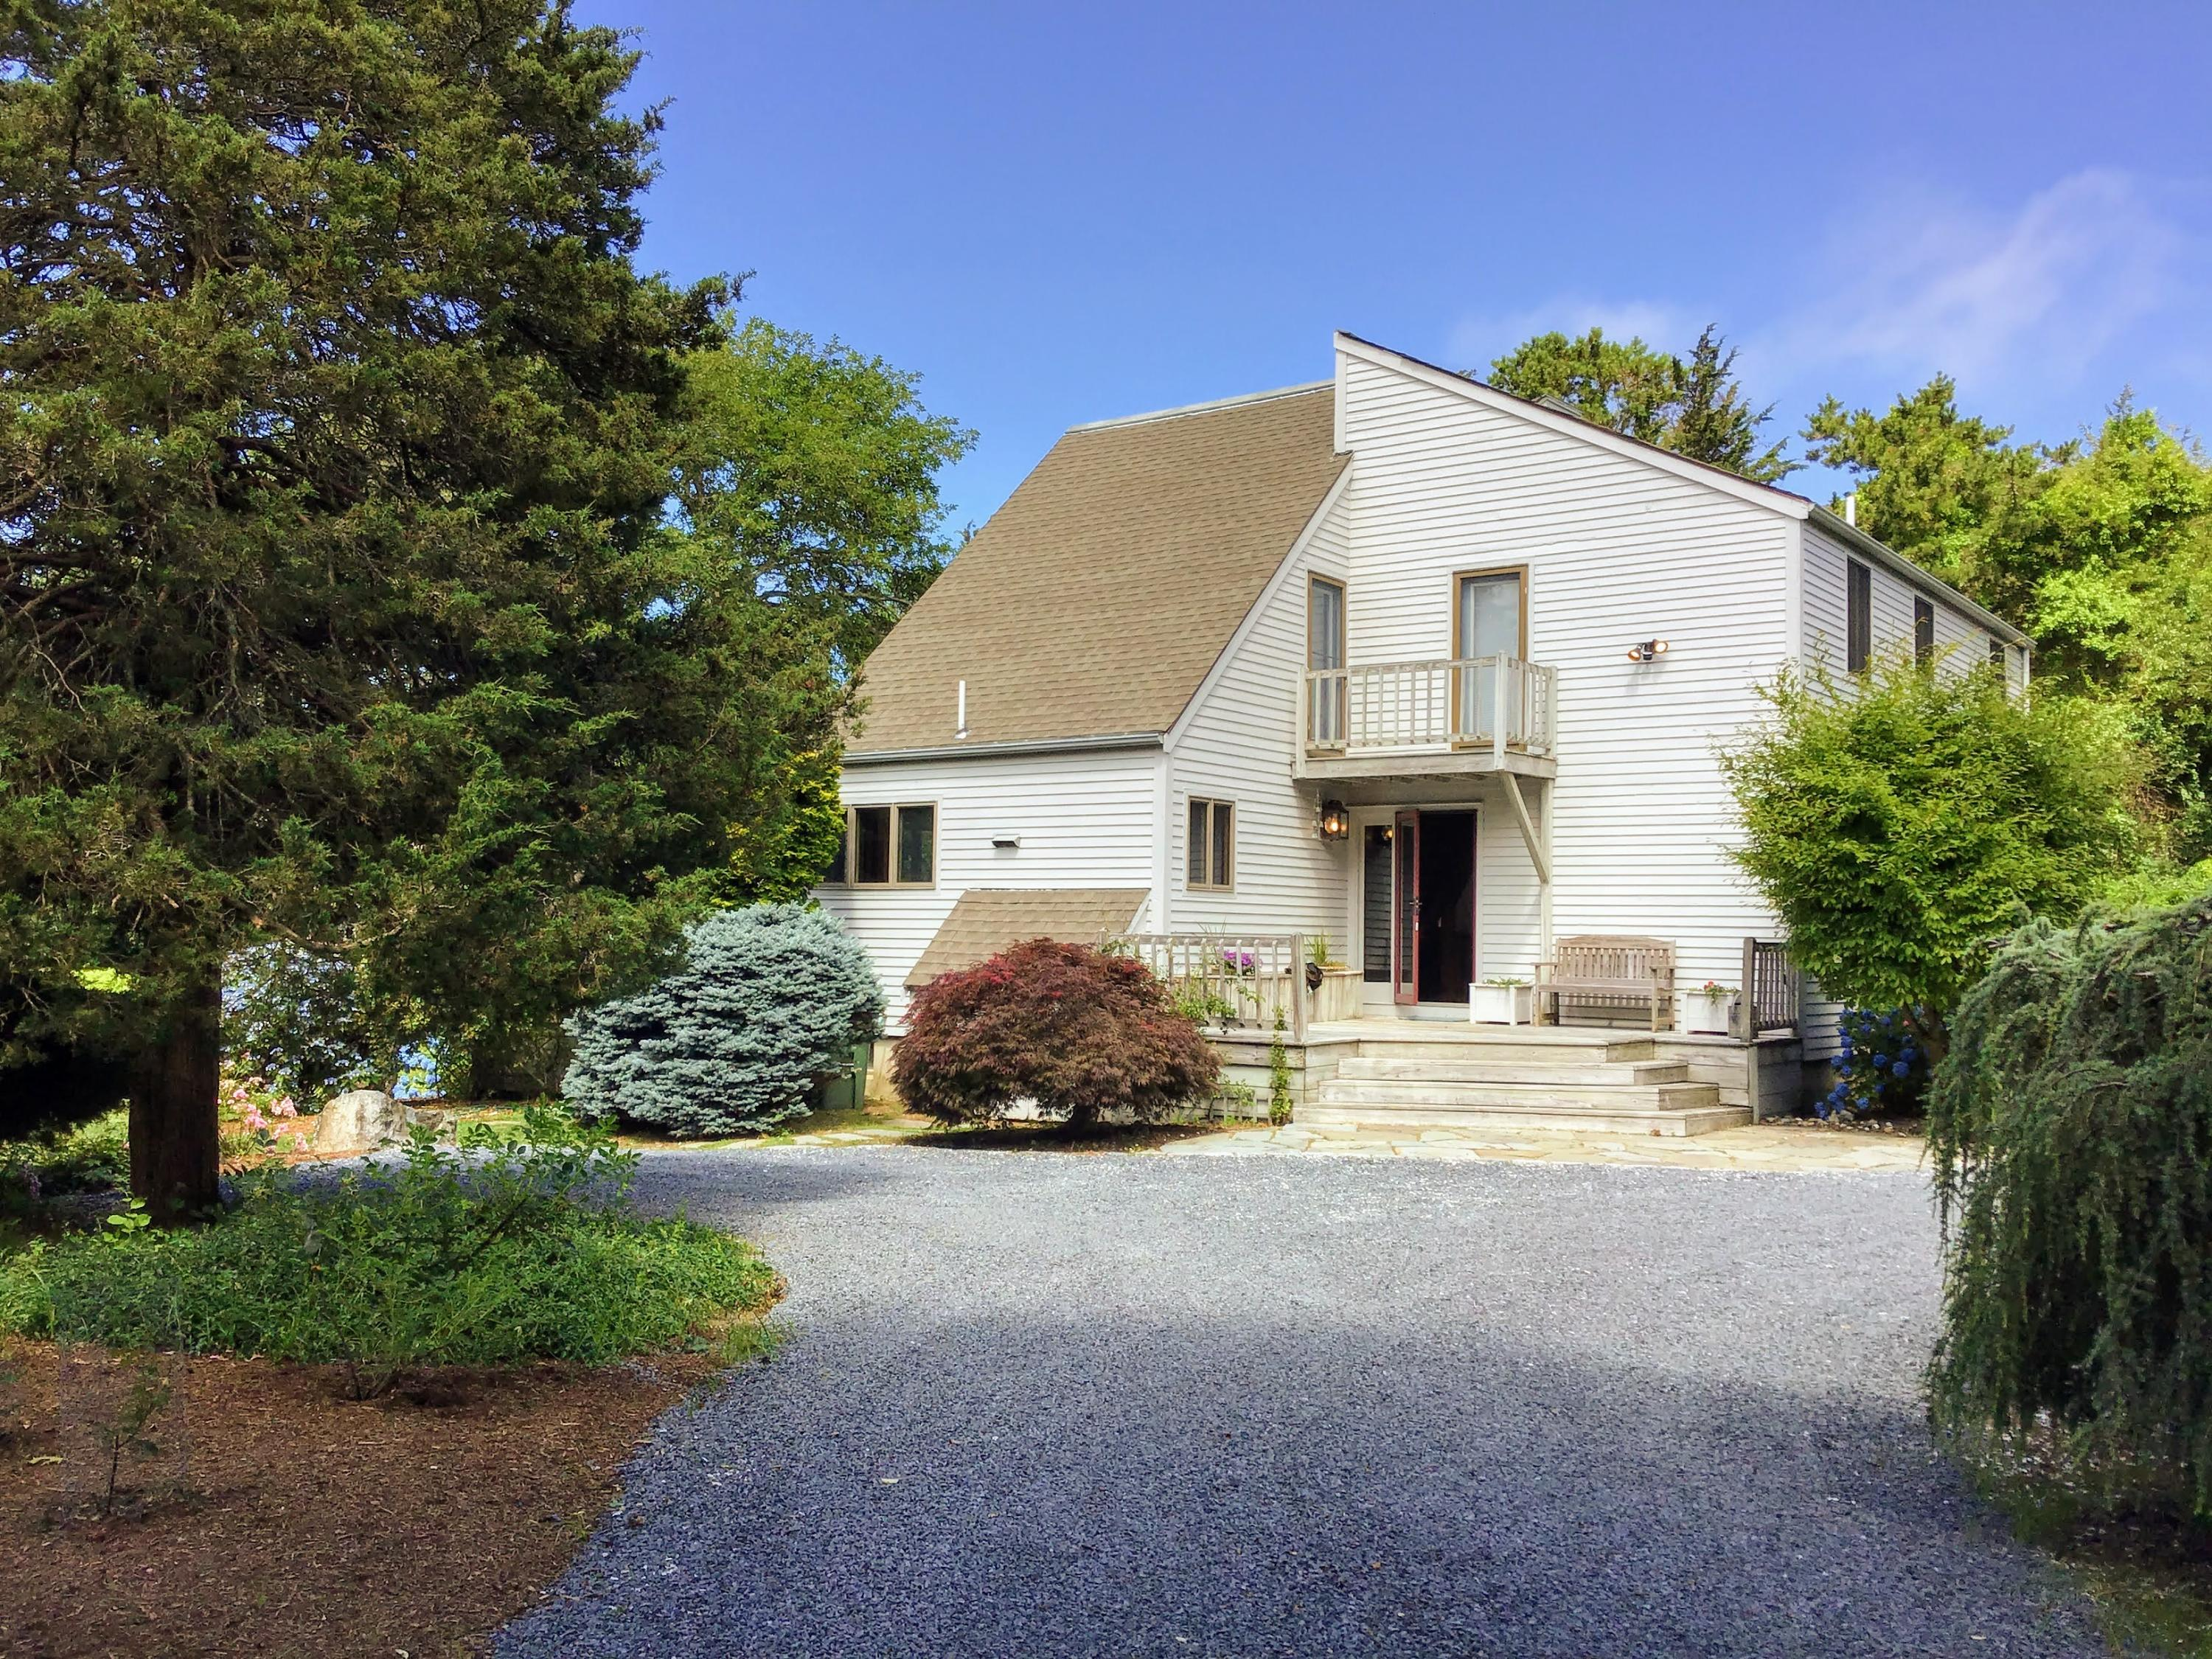 10 Blueberry Island Road, Orleans MA, 02653 sales details